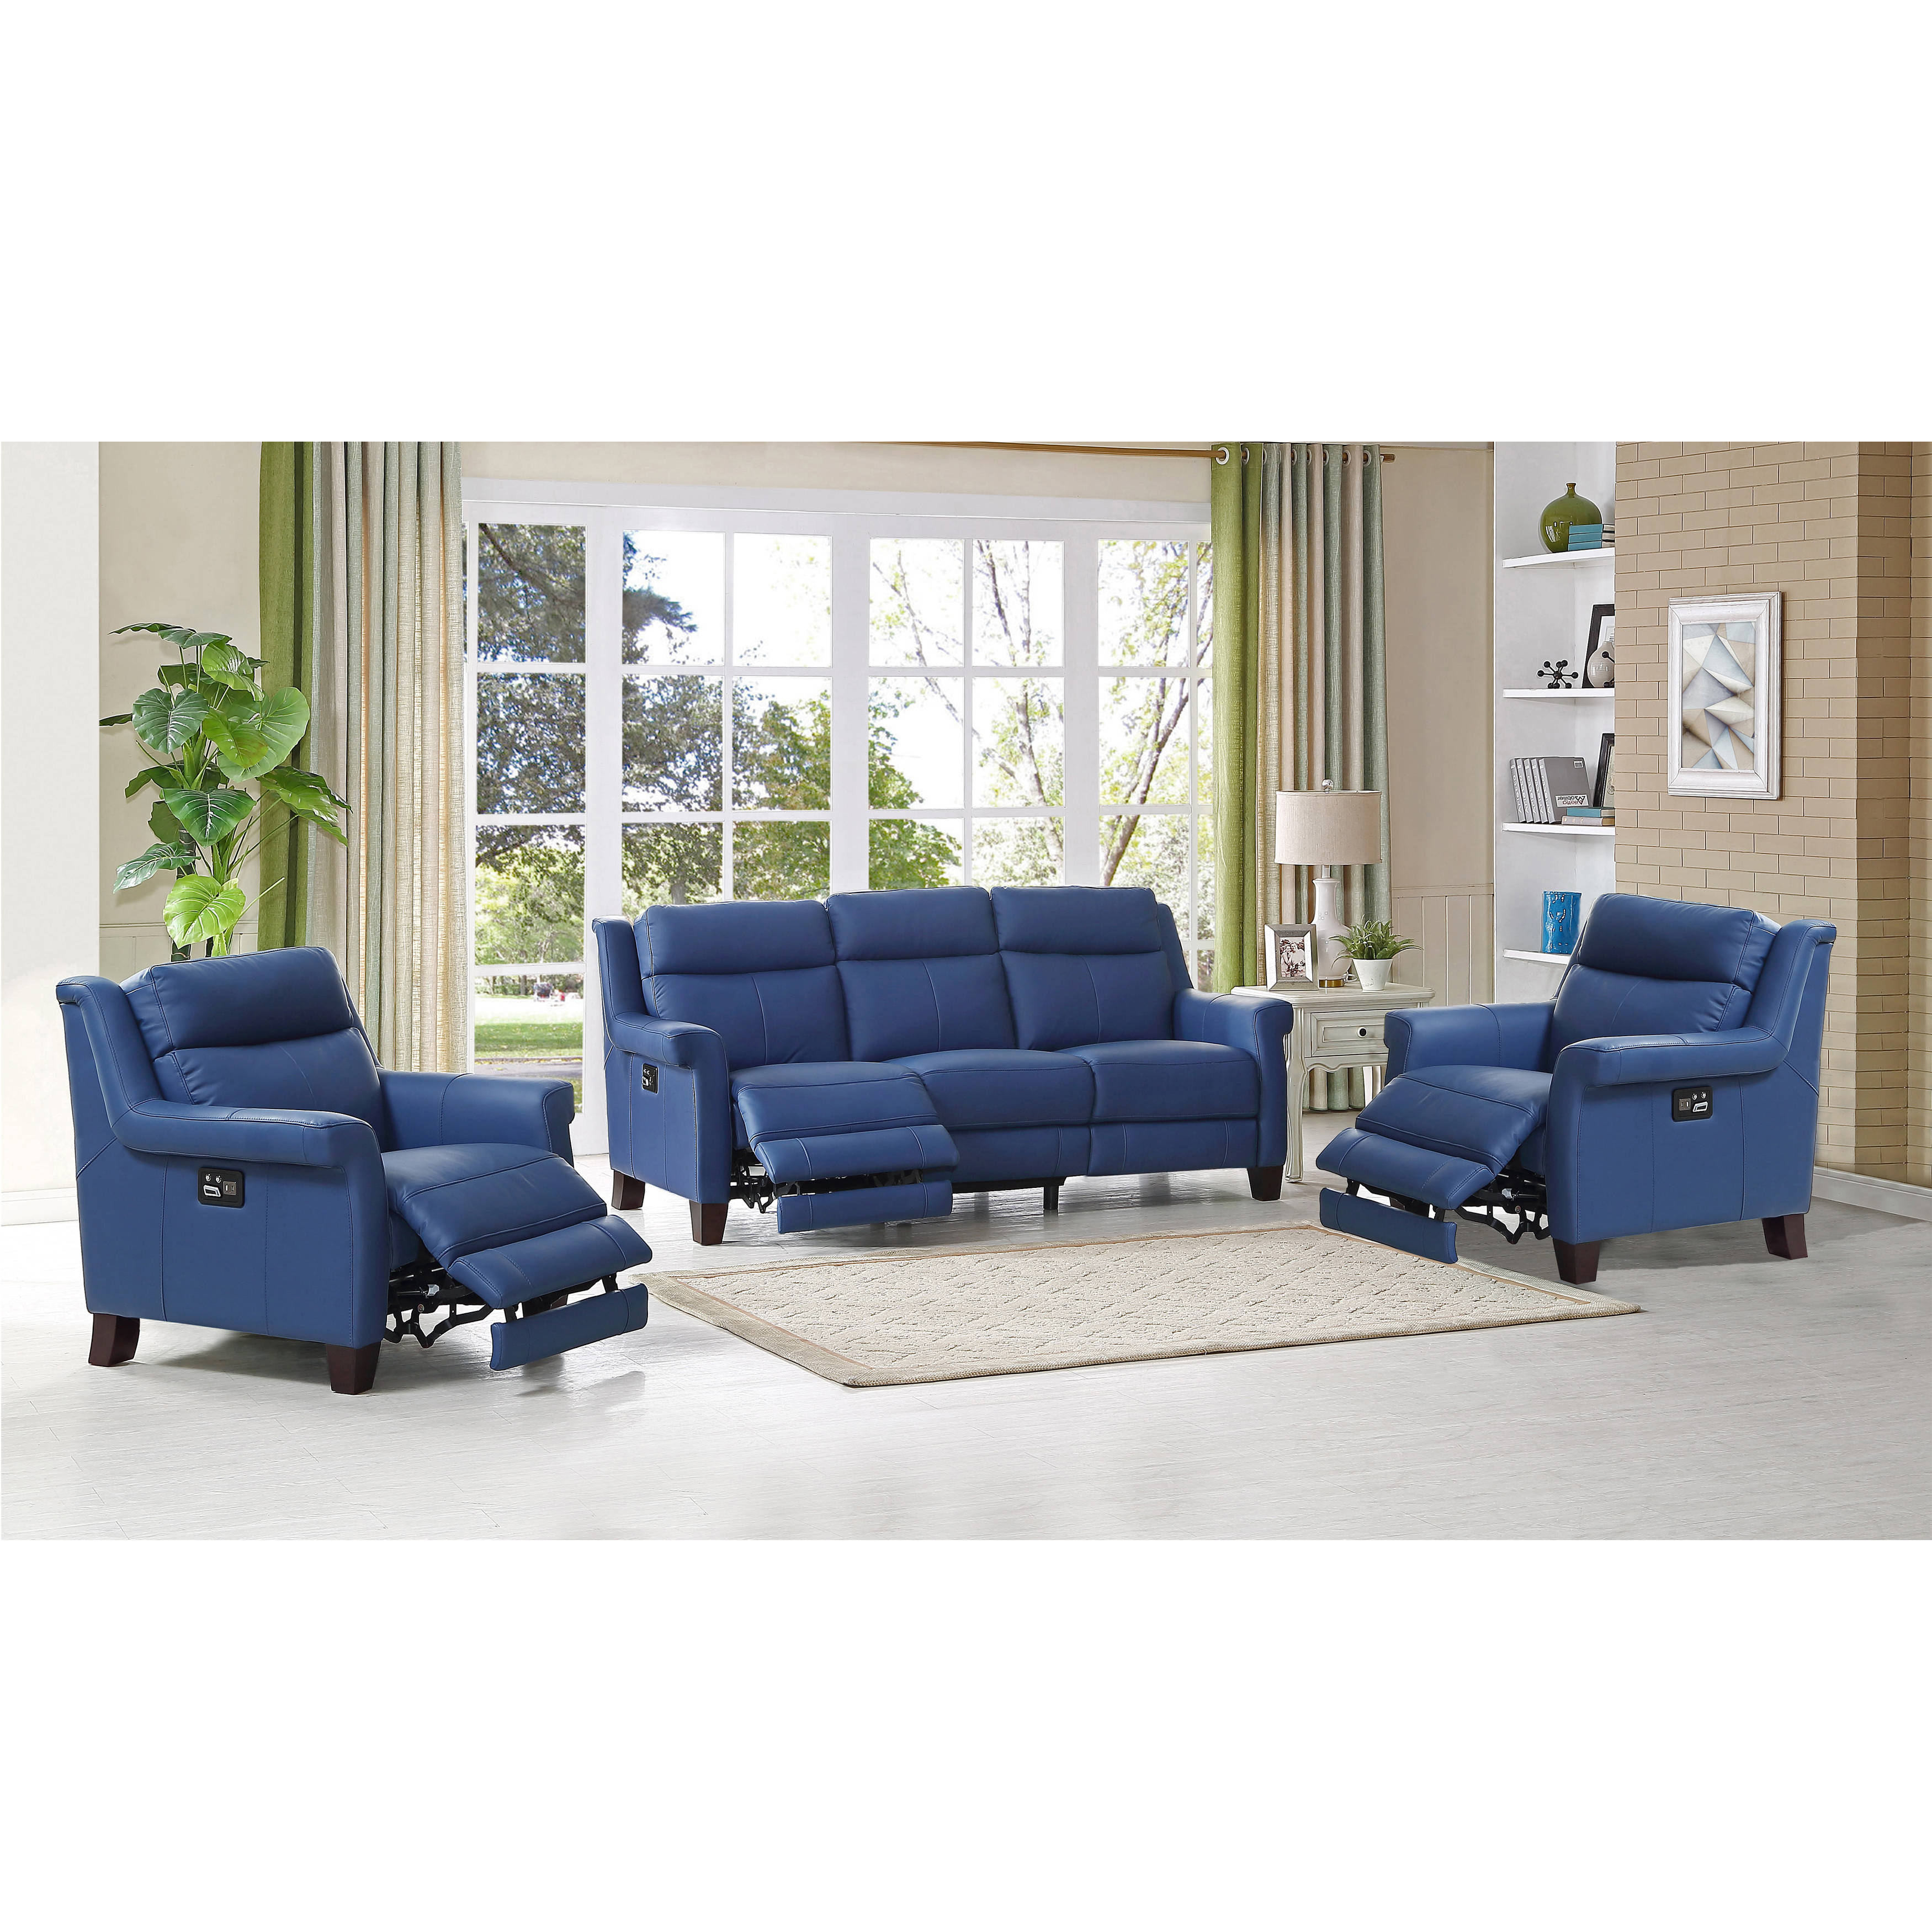 Amax Leather Dolce Blue Power Reclining Sofa and Two Recliners Set ...